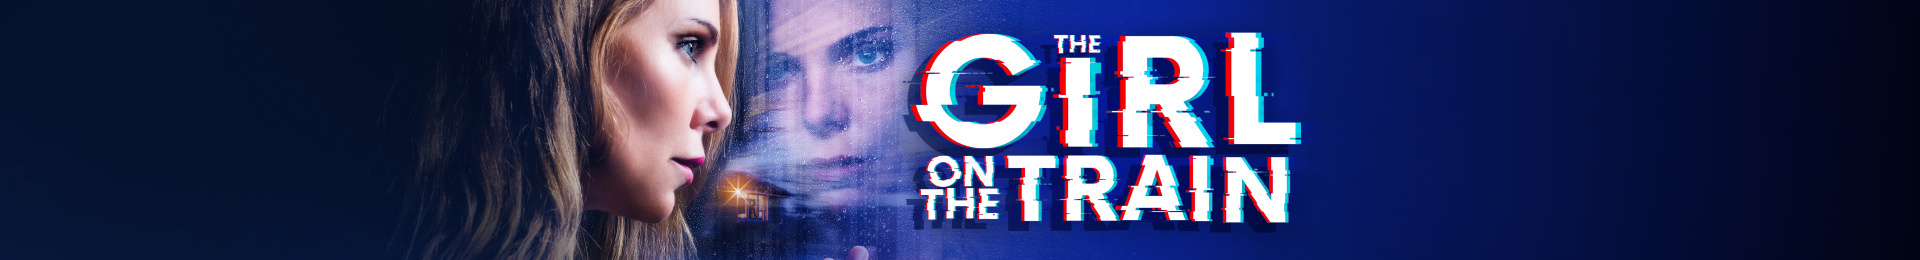 The Girl On The Train banner image